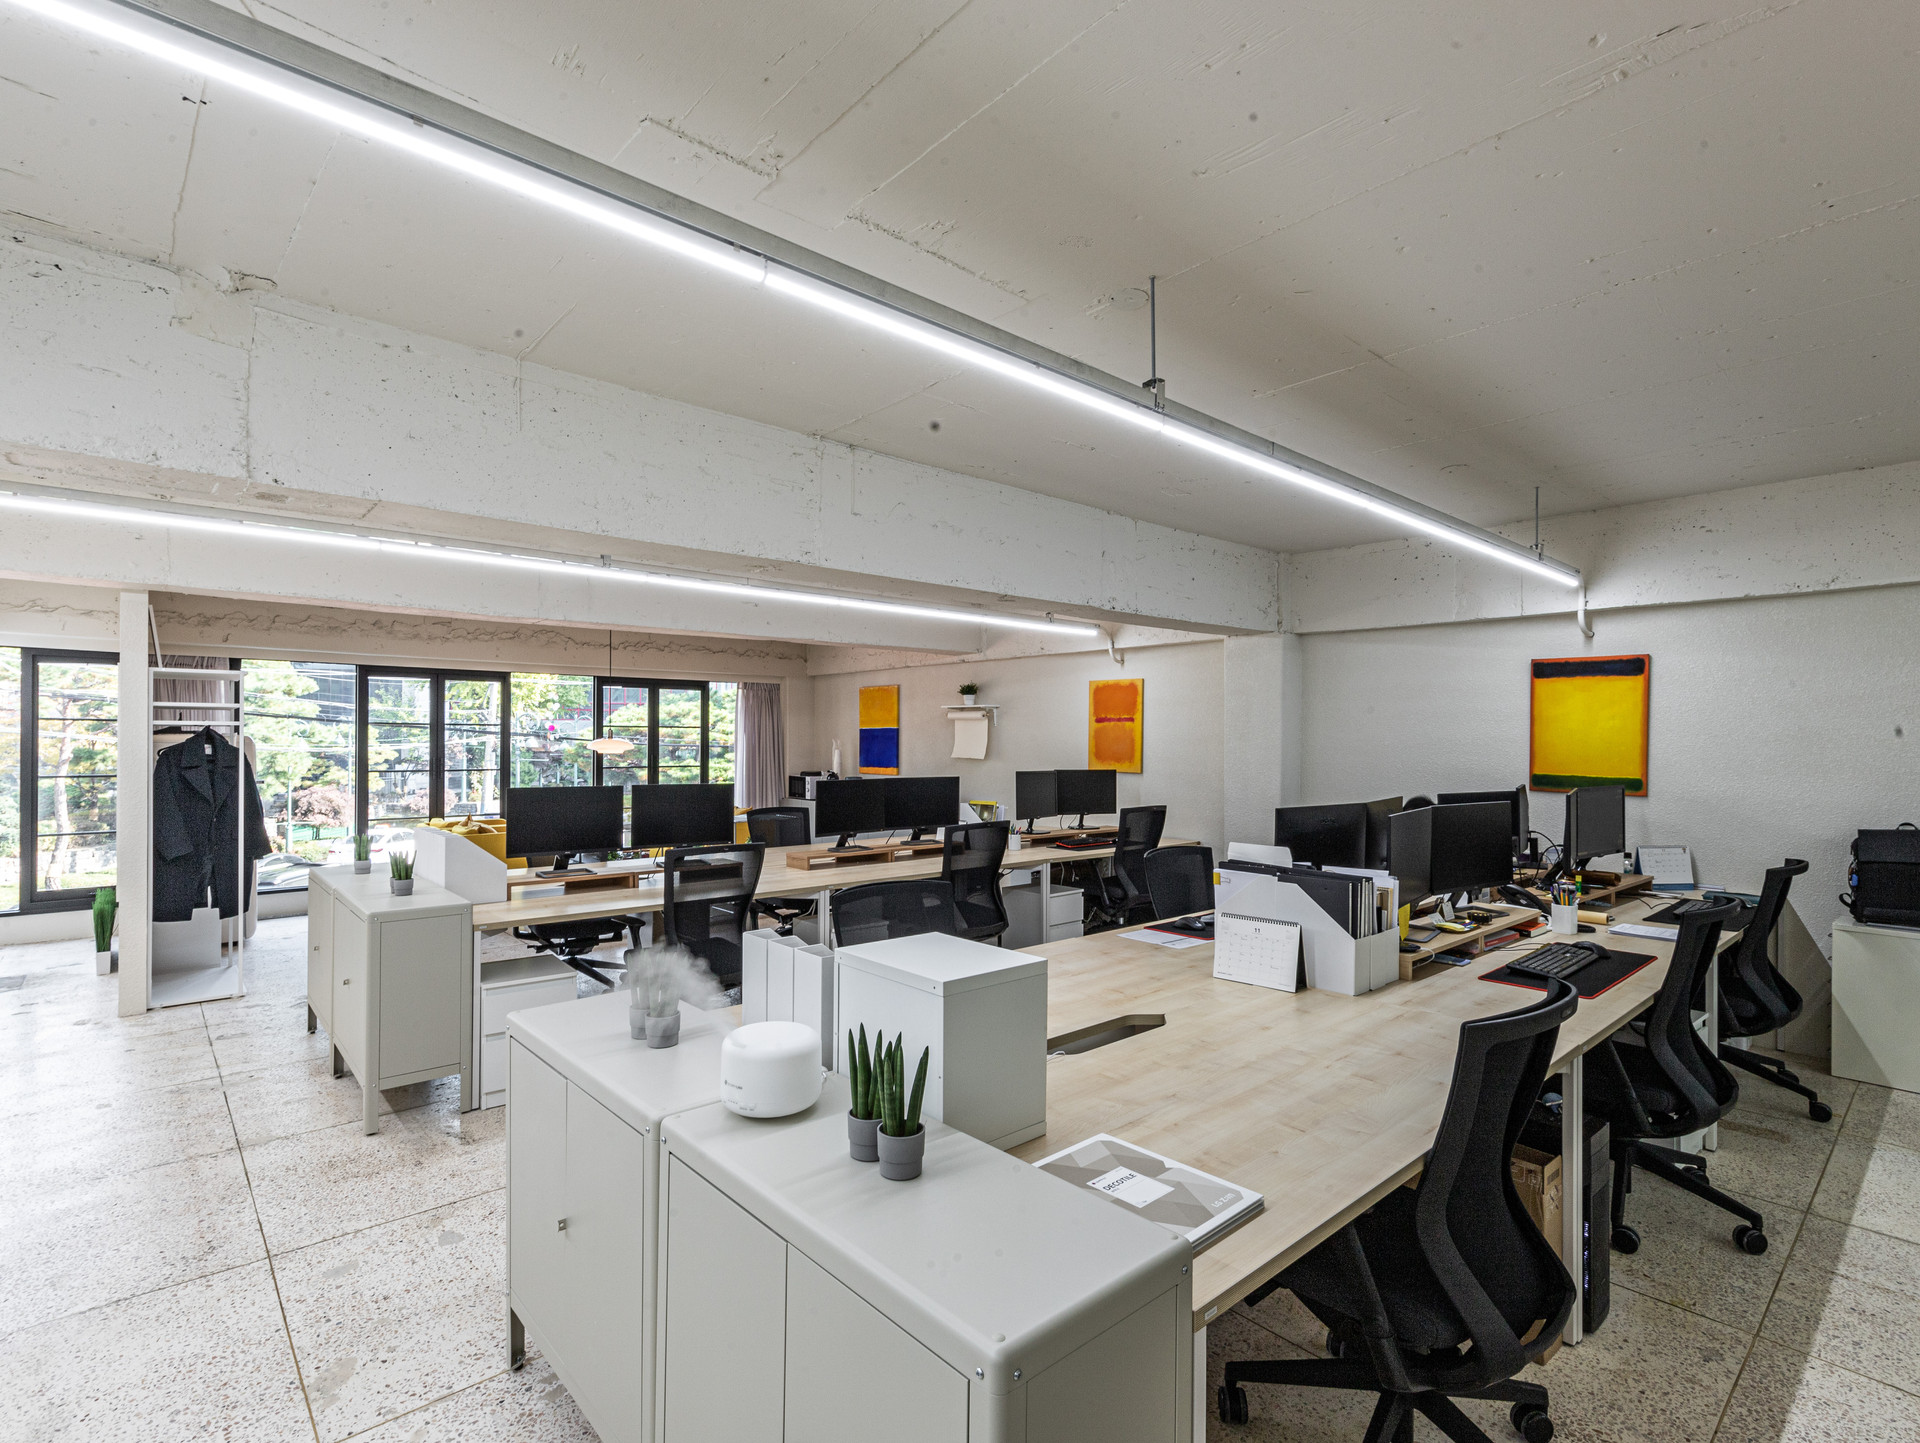 APGUJEONG DESIGN OFFICE